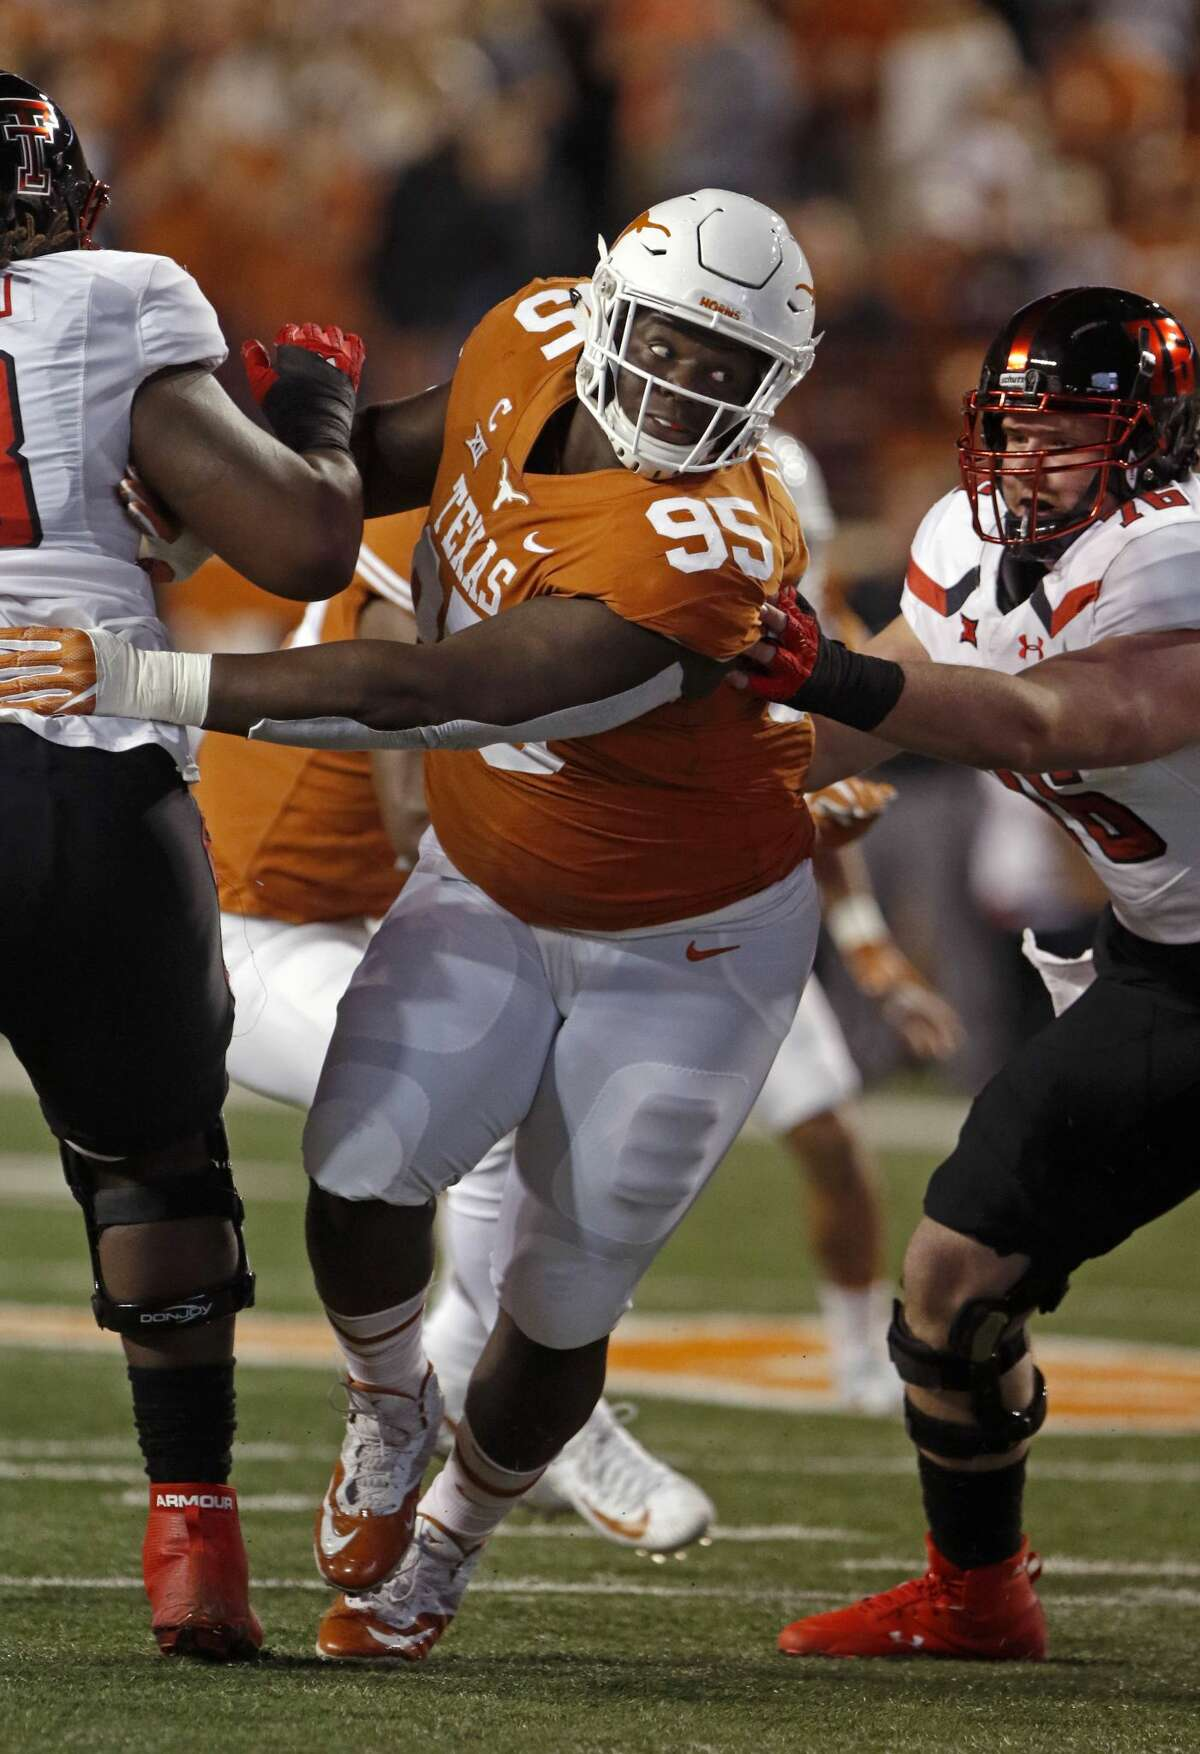 DT Poona Ford, Texas Ford (5-11, 303 pounds) earned all-conference honors in his final two seasons at Texas, and had eight tackles for loss in 2017 on his way to earning  Big 12 Defensive Lineman of the Year